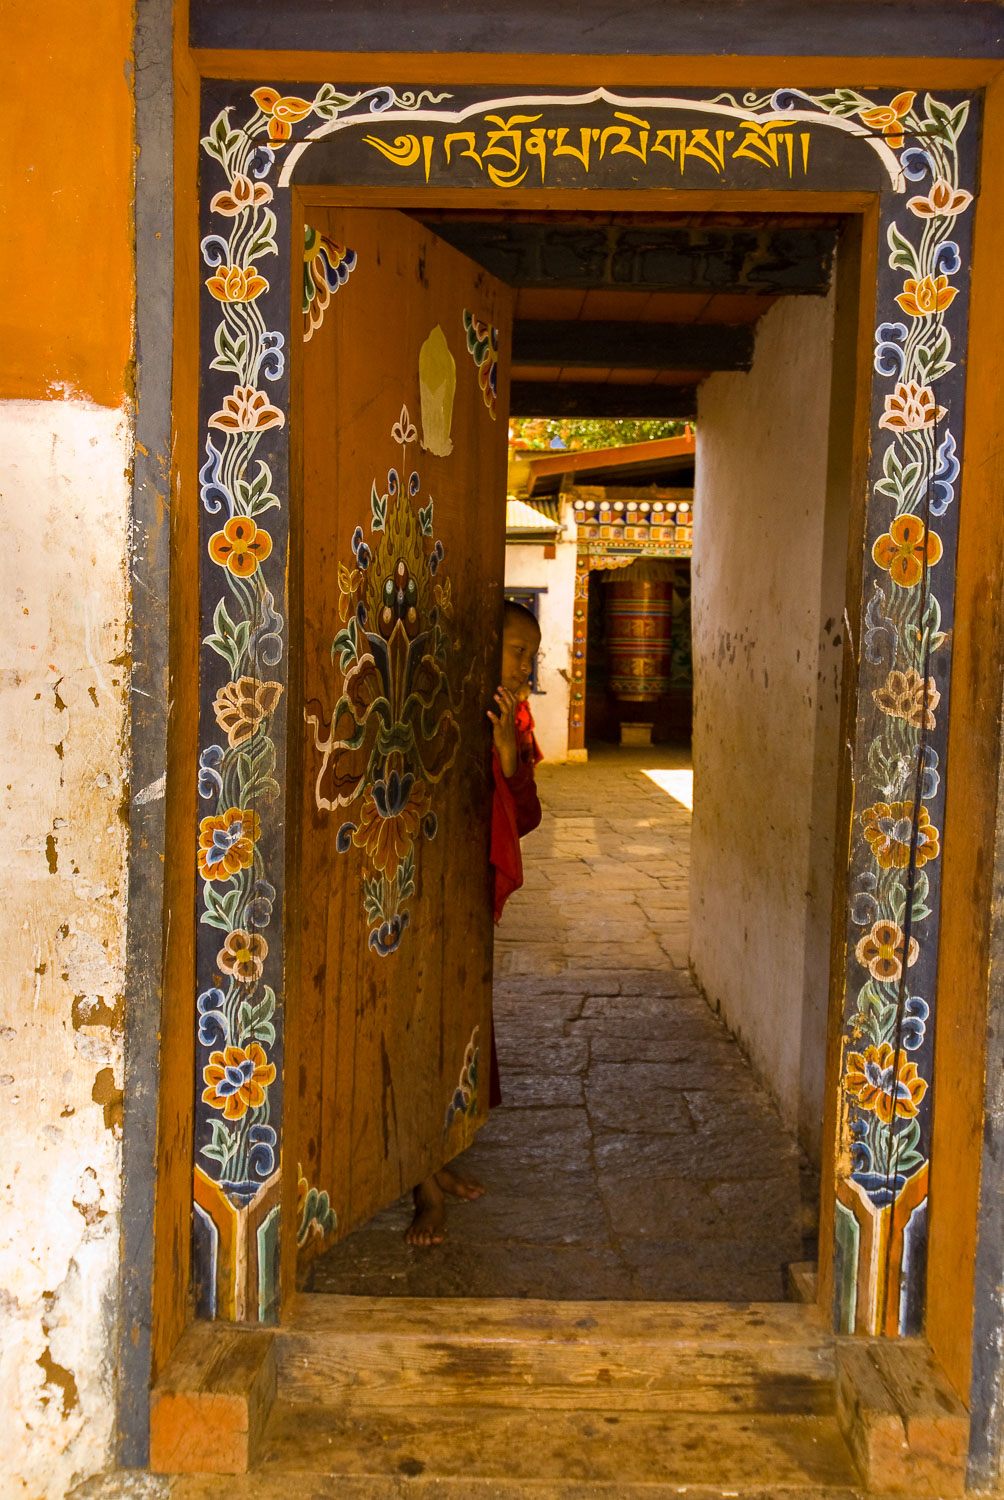 Inner Sanctum , Young Monk opens an ornate Doorway to Temple of